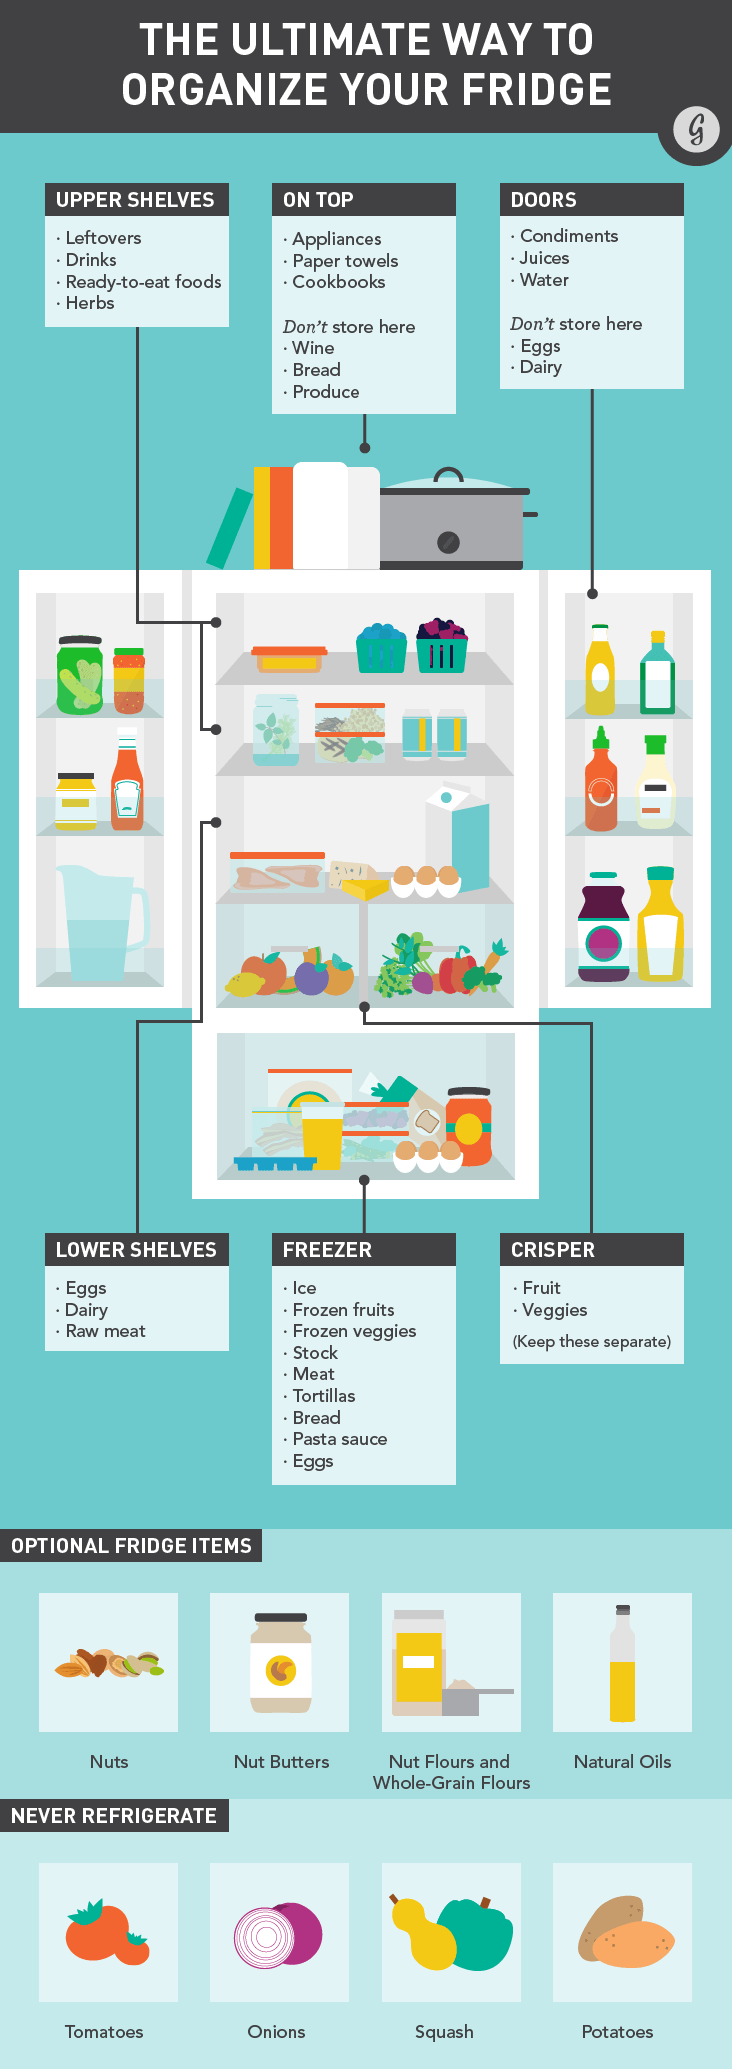 the ultimate refrigerator organization